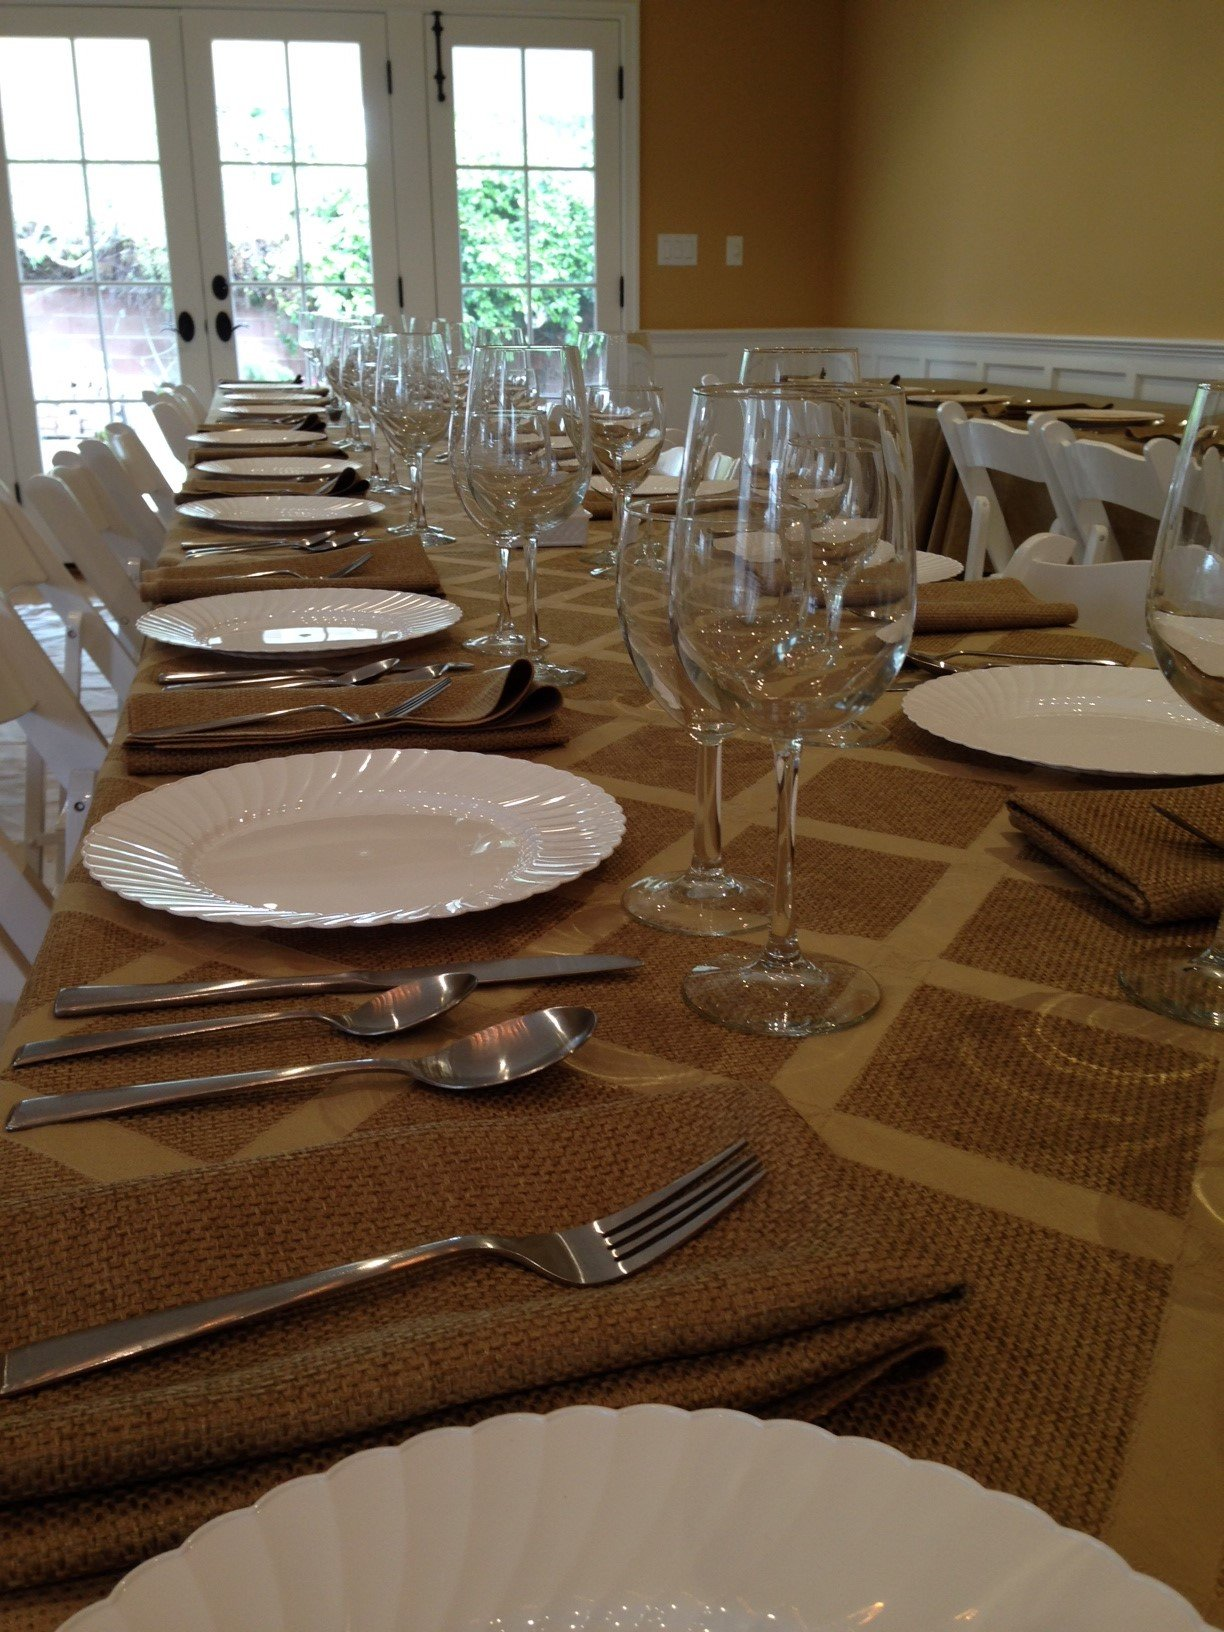 Polyester Sedona Burlap Table Cloth (Wheat, 70x144 Rectangle) by LinenLovers (Image #1)